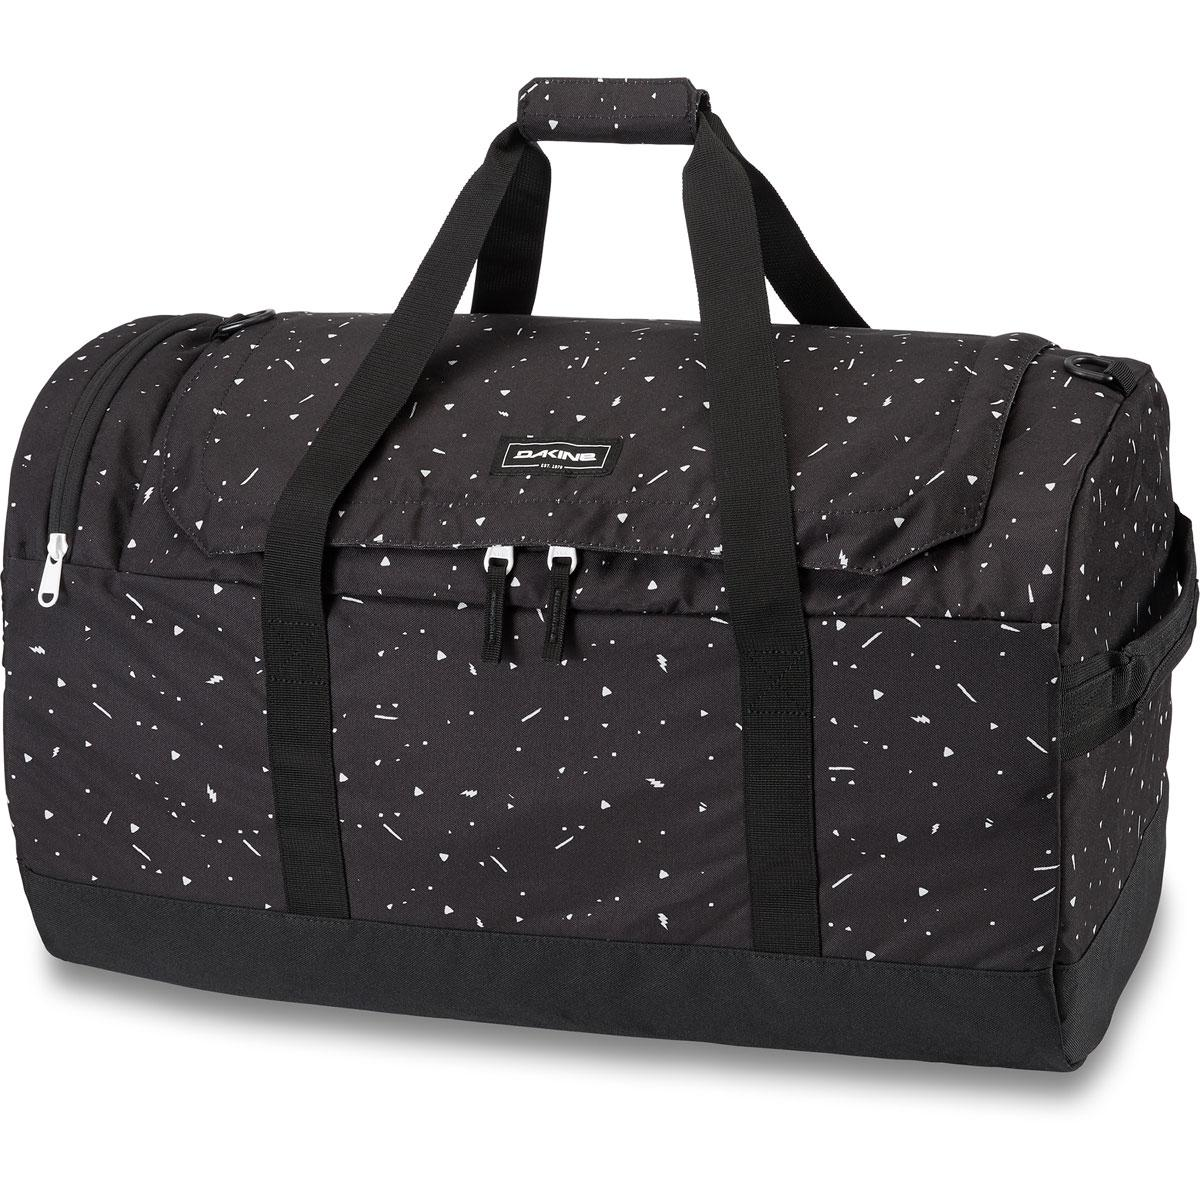 Dakine EQ Duffle Bag in Thunderdot